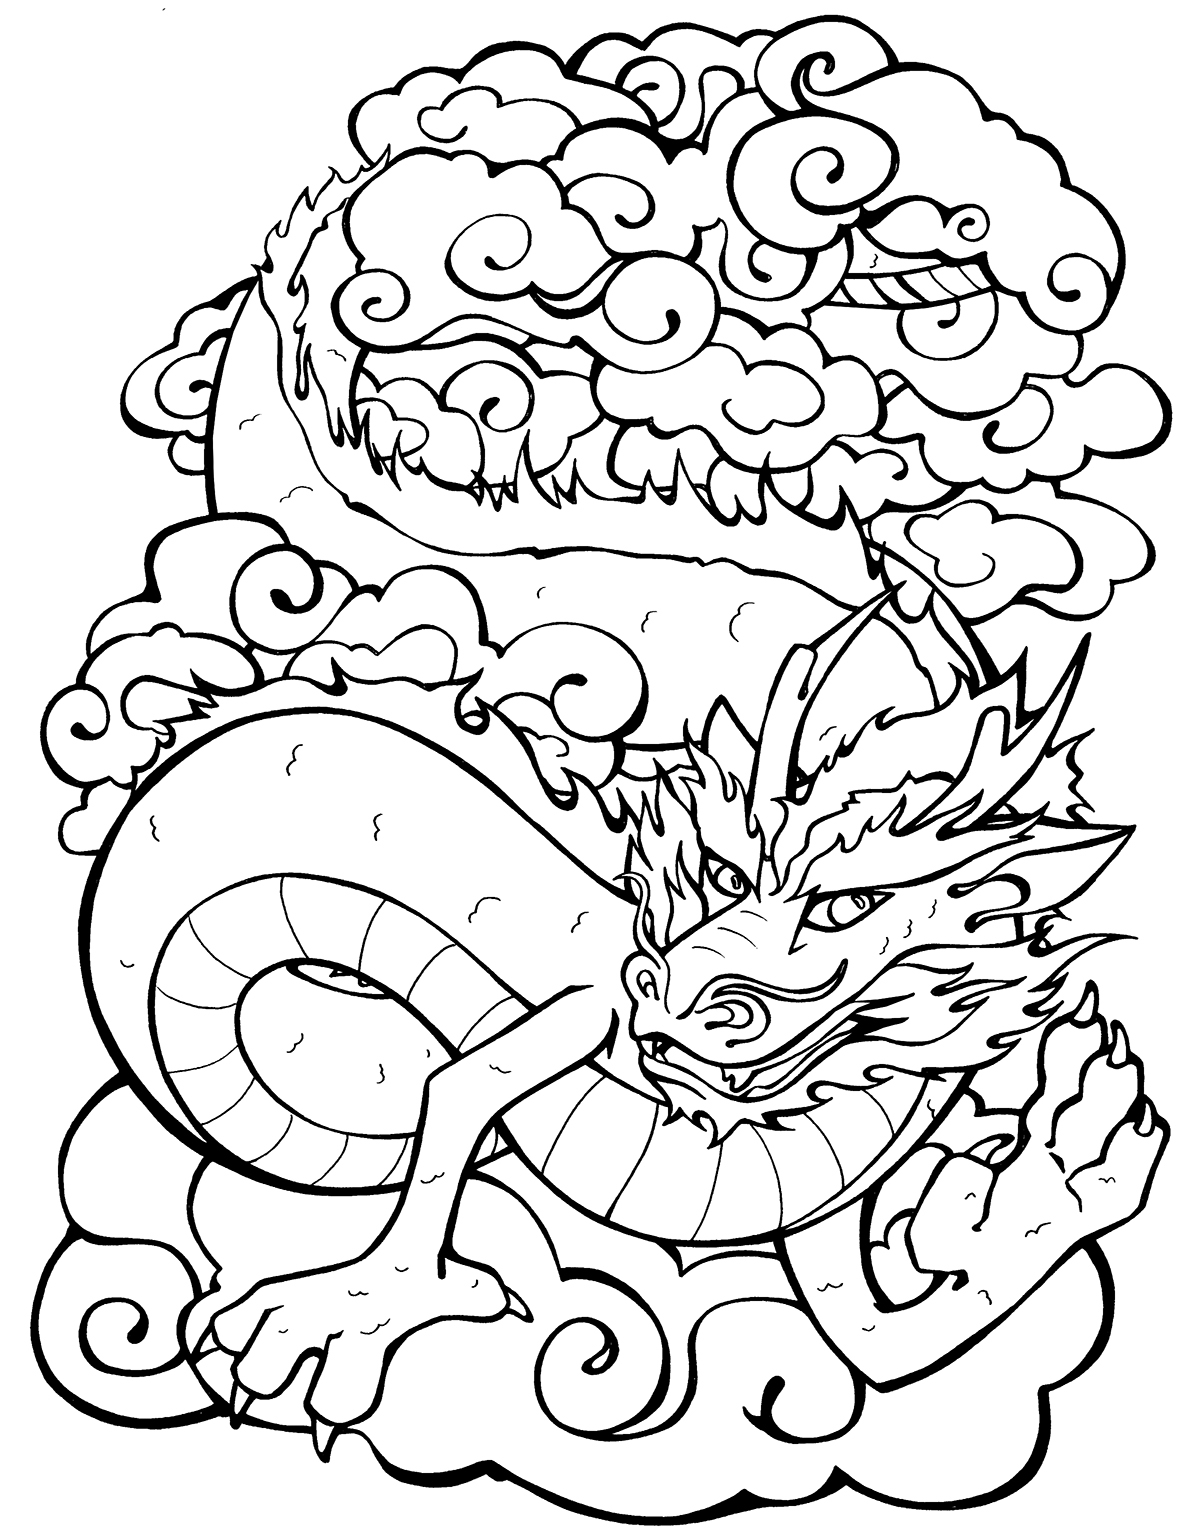 festival coloring pages - photo#42